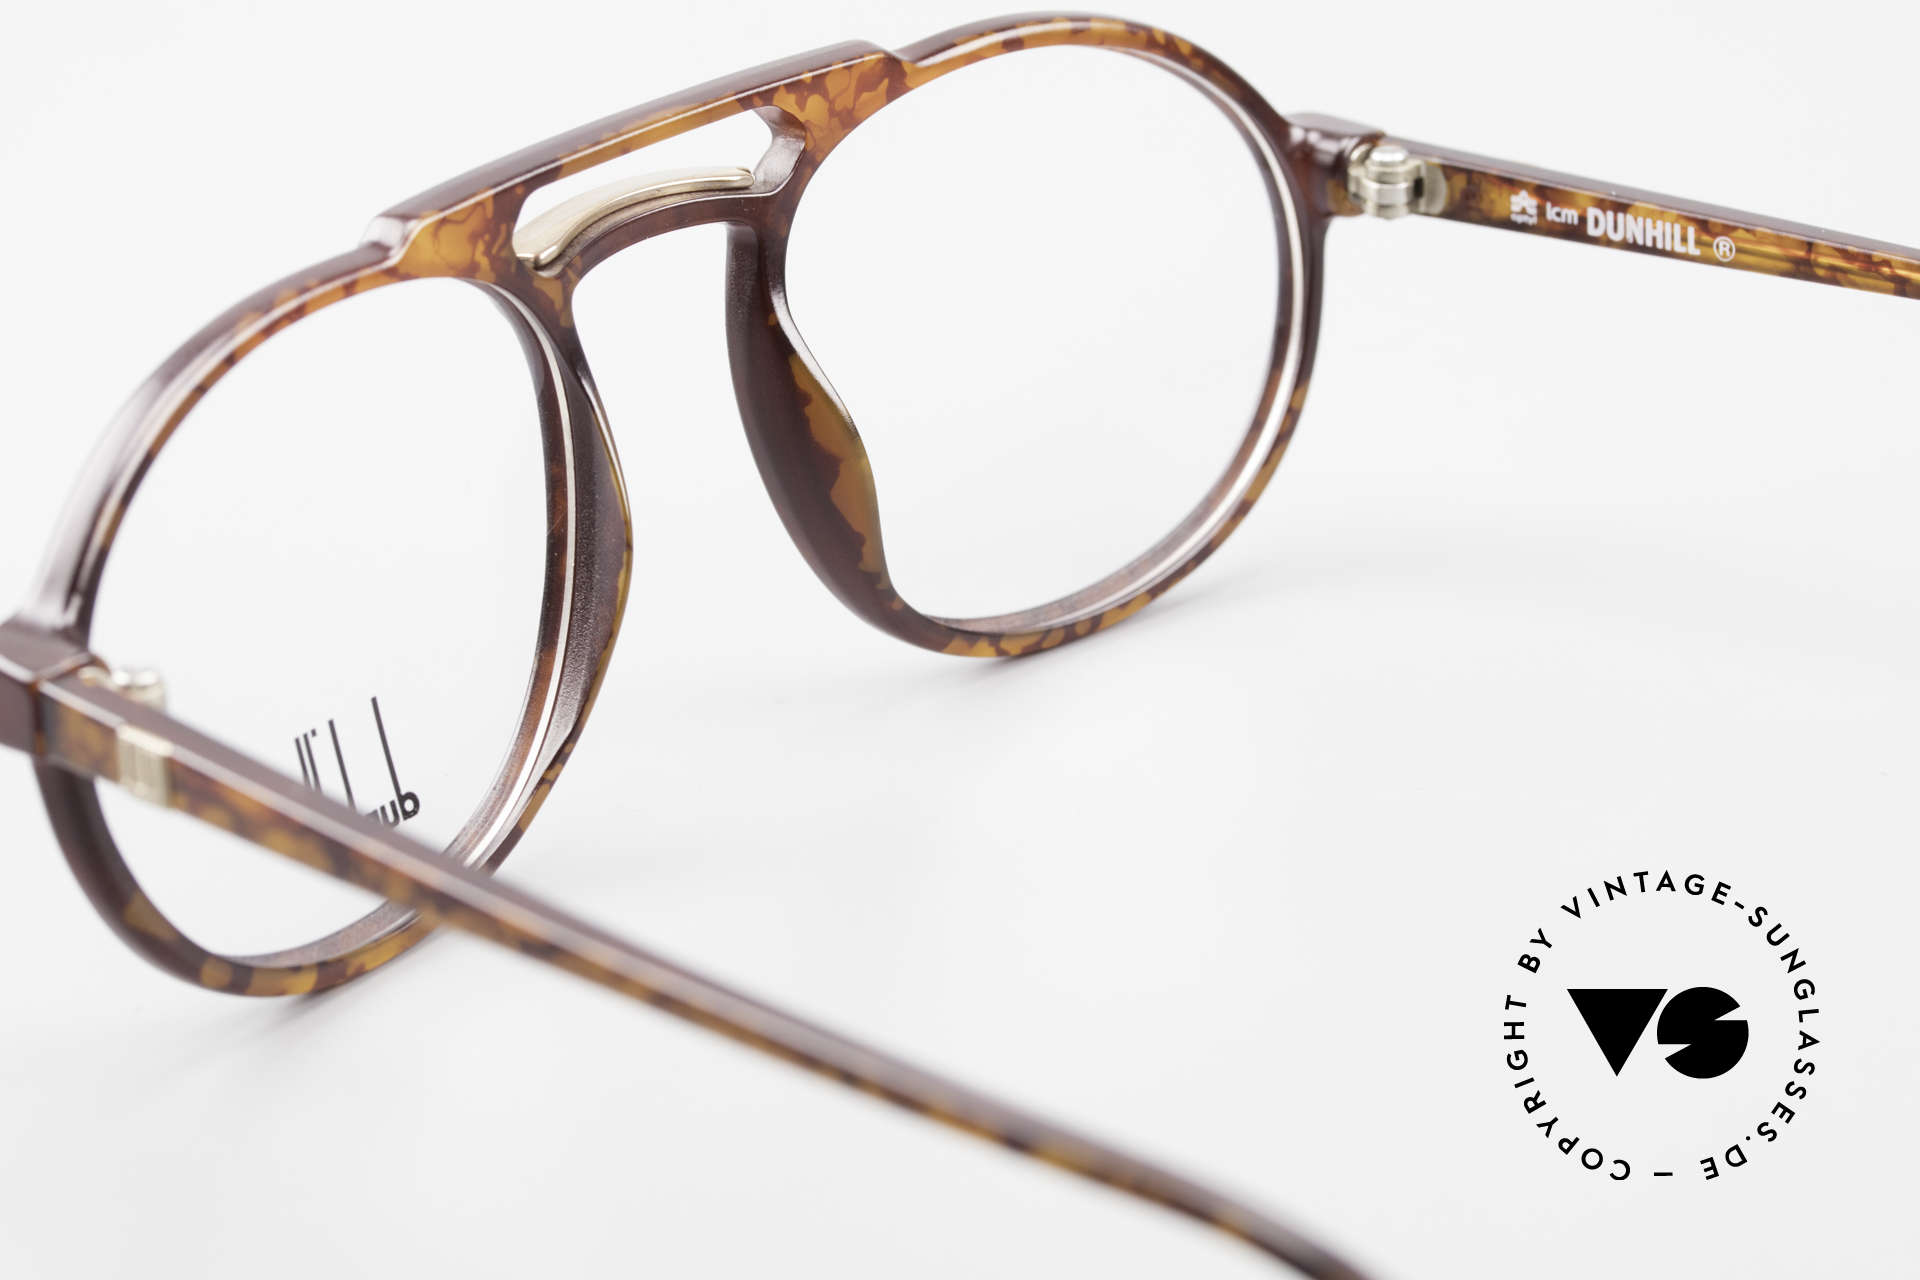 Dunhill 6114 Oval Round Vintage Frame 90s, NO retro design, but authentic old 1990's commodity, Made for Men